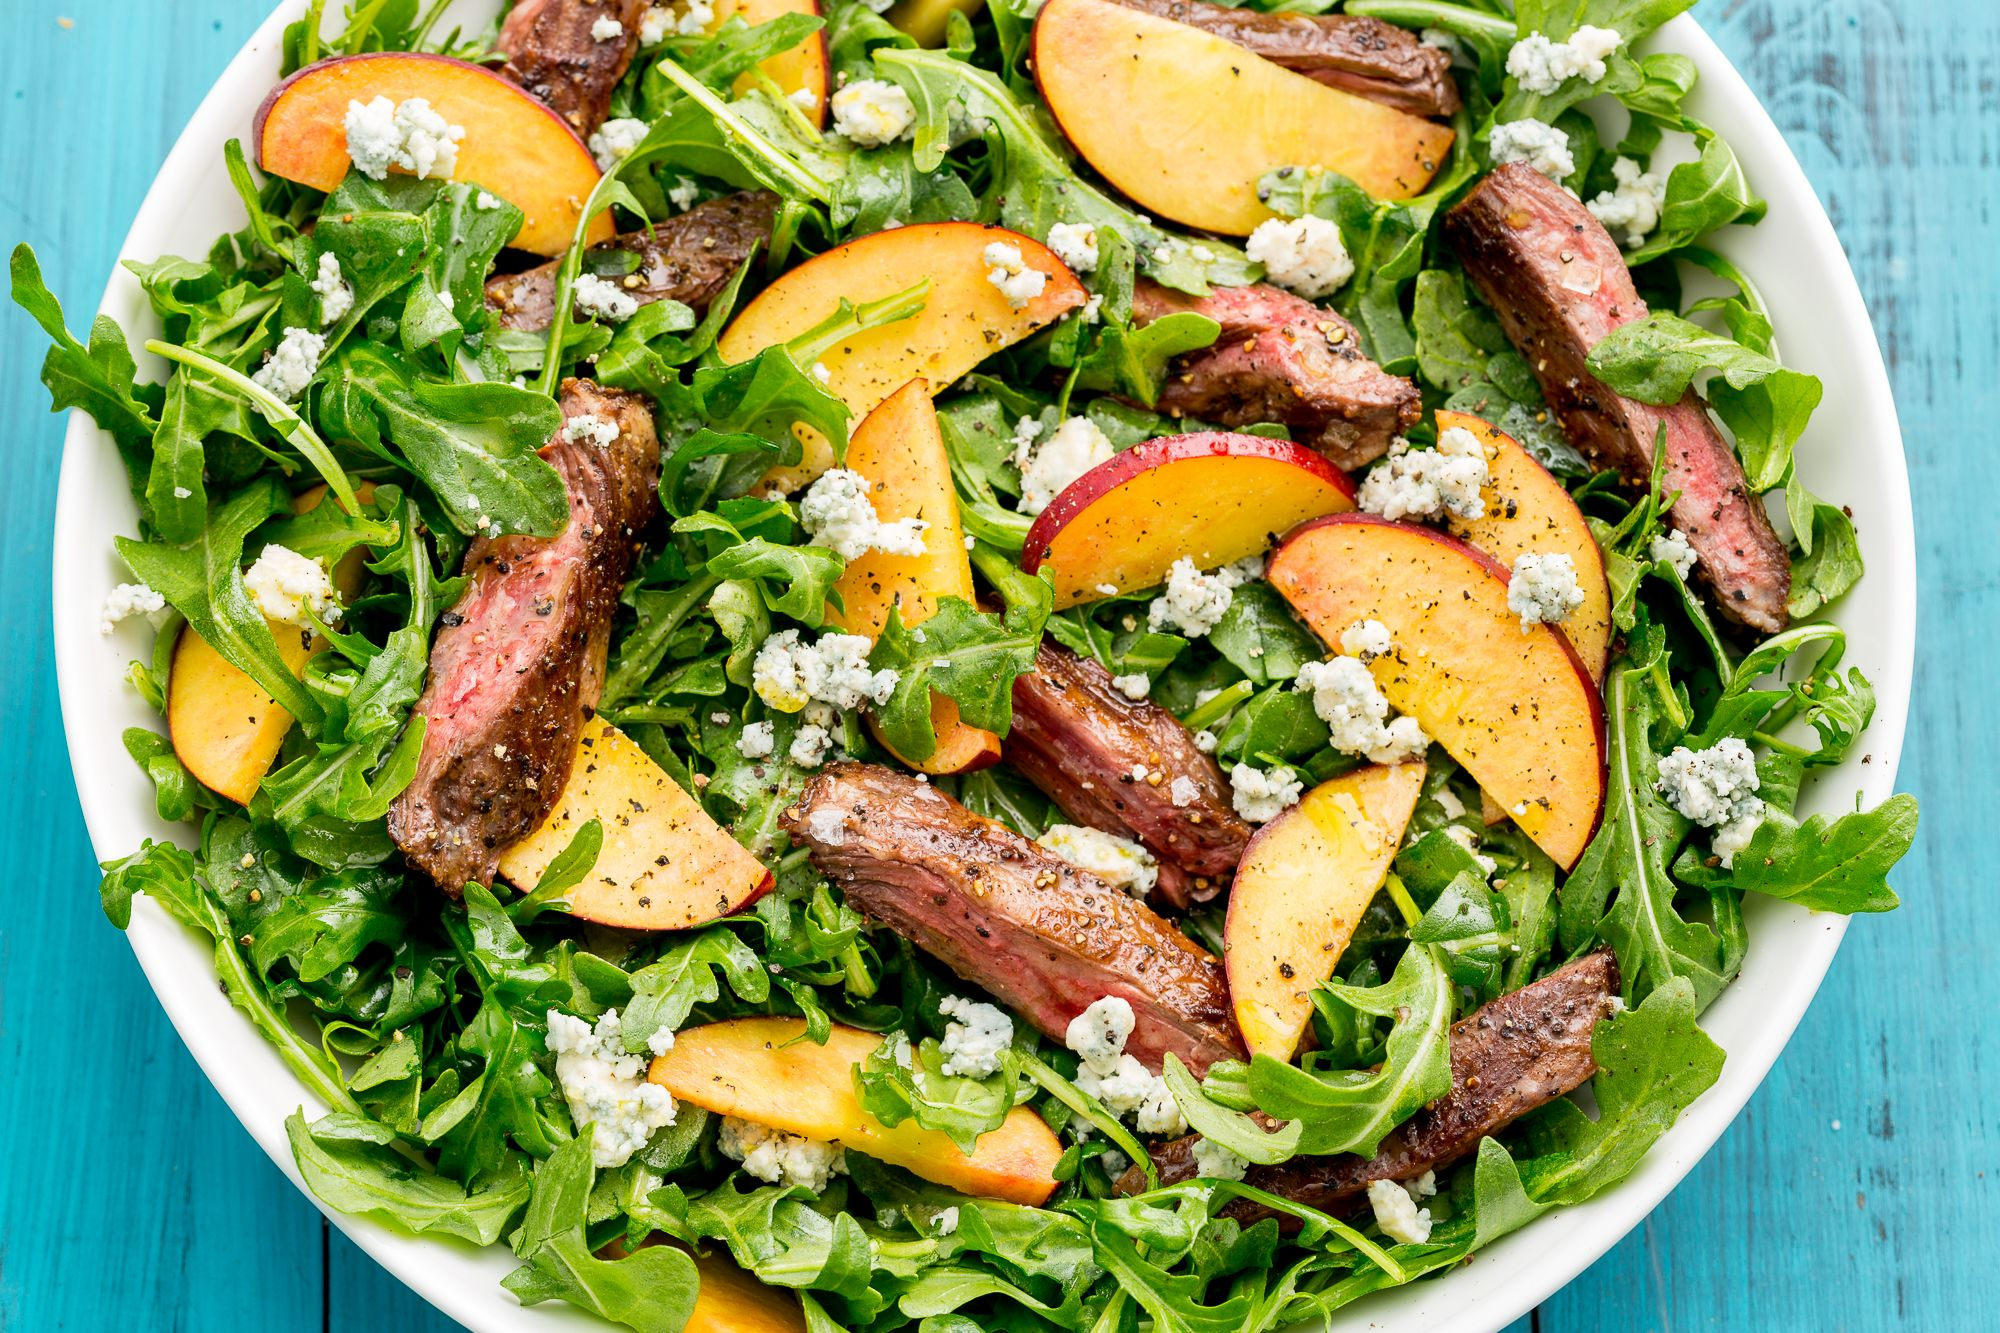 Best Balsamic Grilled Steak Salad With Peaches How To Make Balsamic Grilled Steak Salad With Peaches